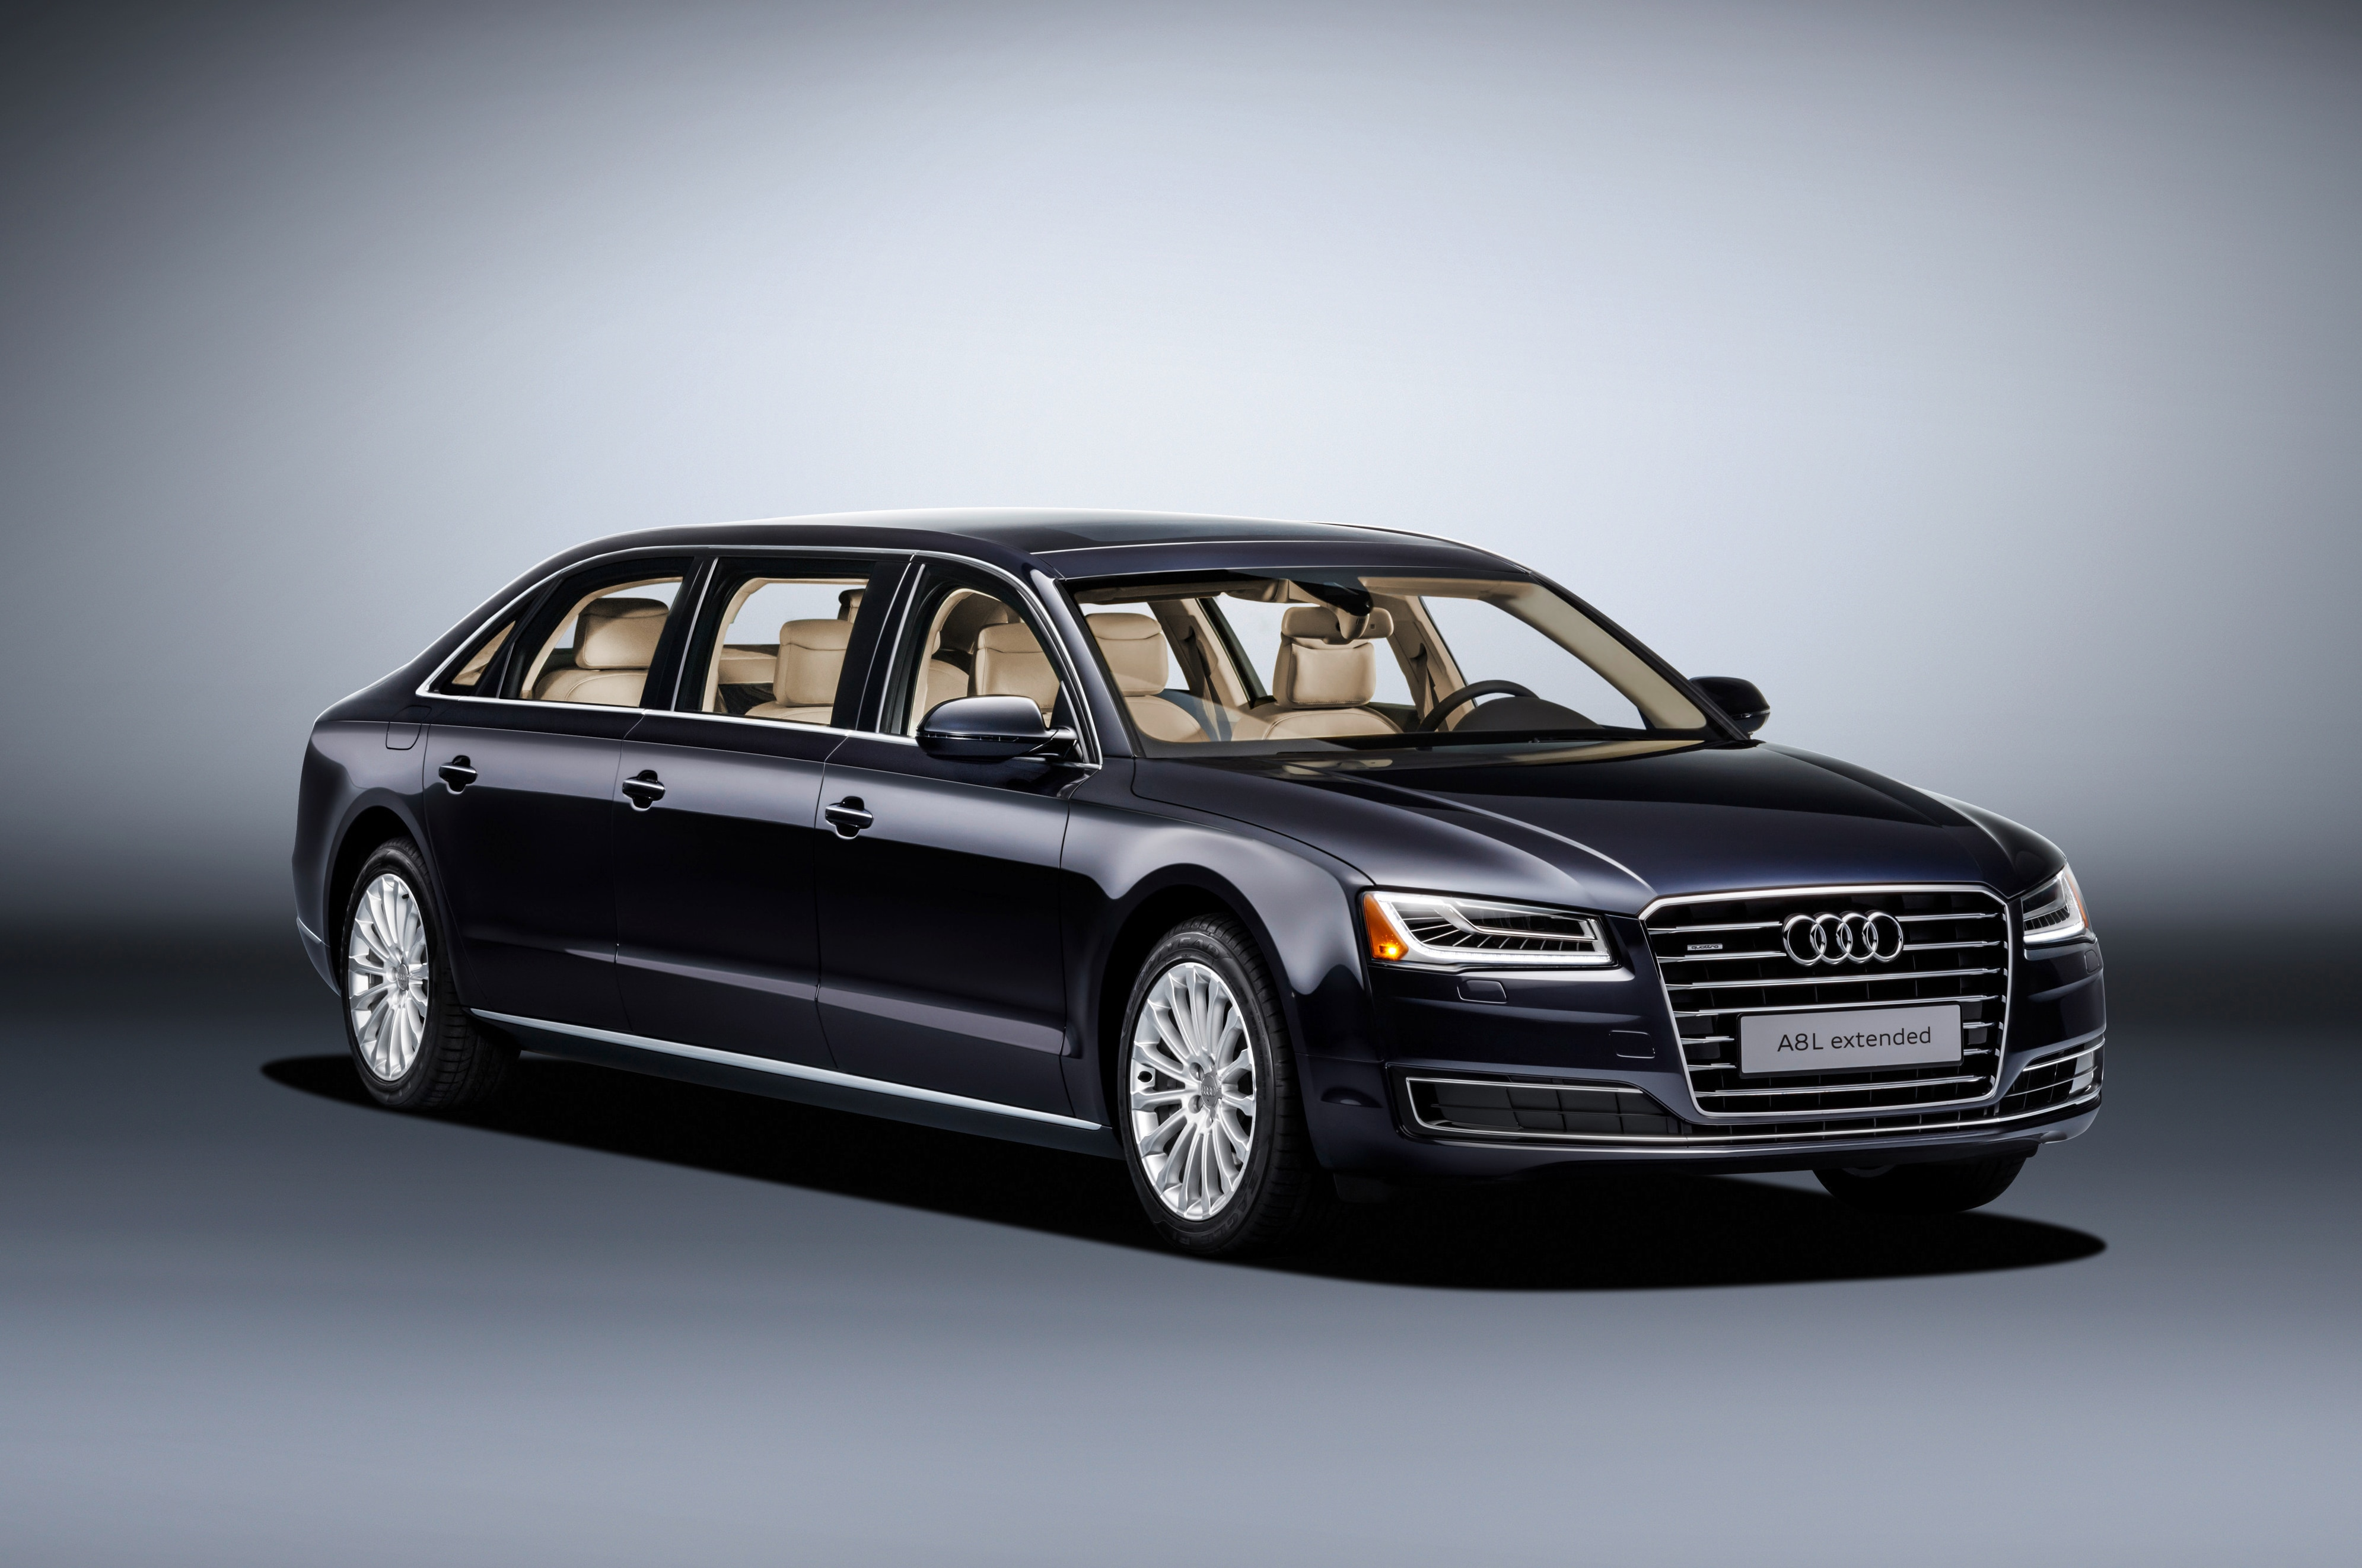 Check Out This Massive, One-Off Audi A8 L Extended Limousine